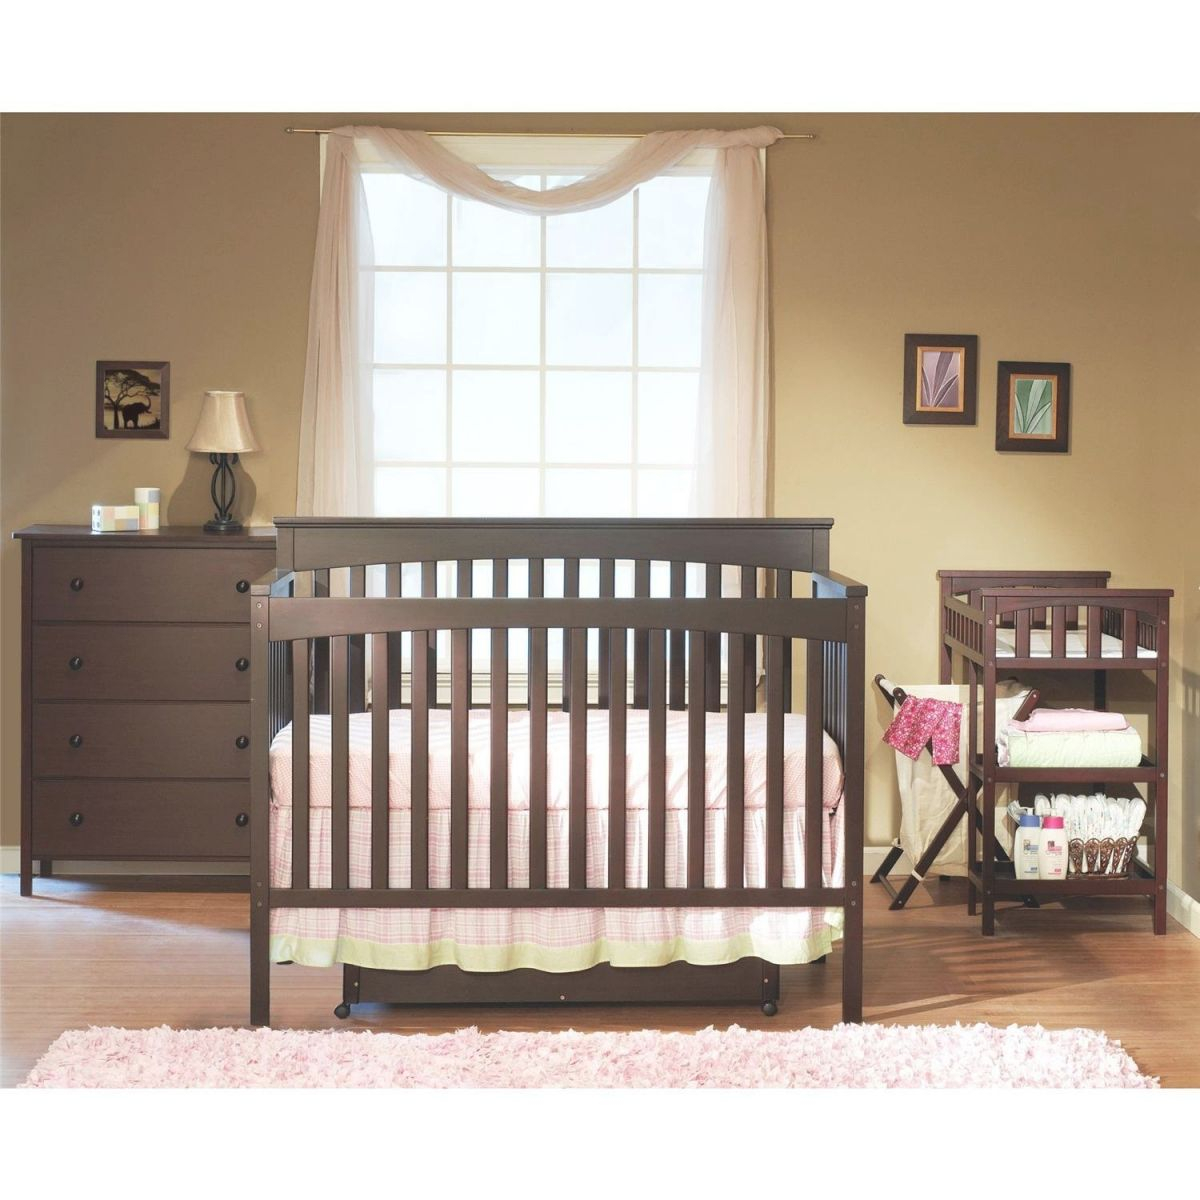 Gray Room Girl Grey Baby And Furniture White Black Crib throughout Unique Baby Bedroom Furniture Sets